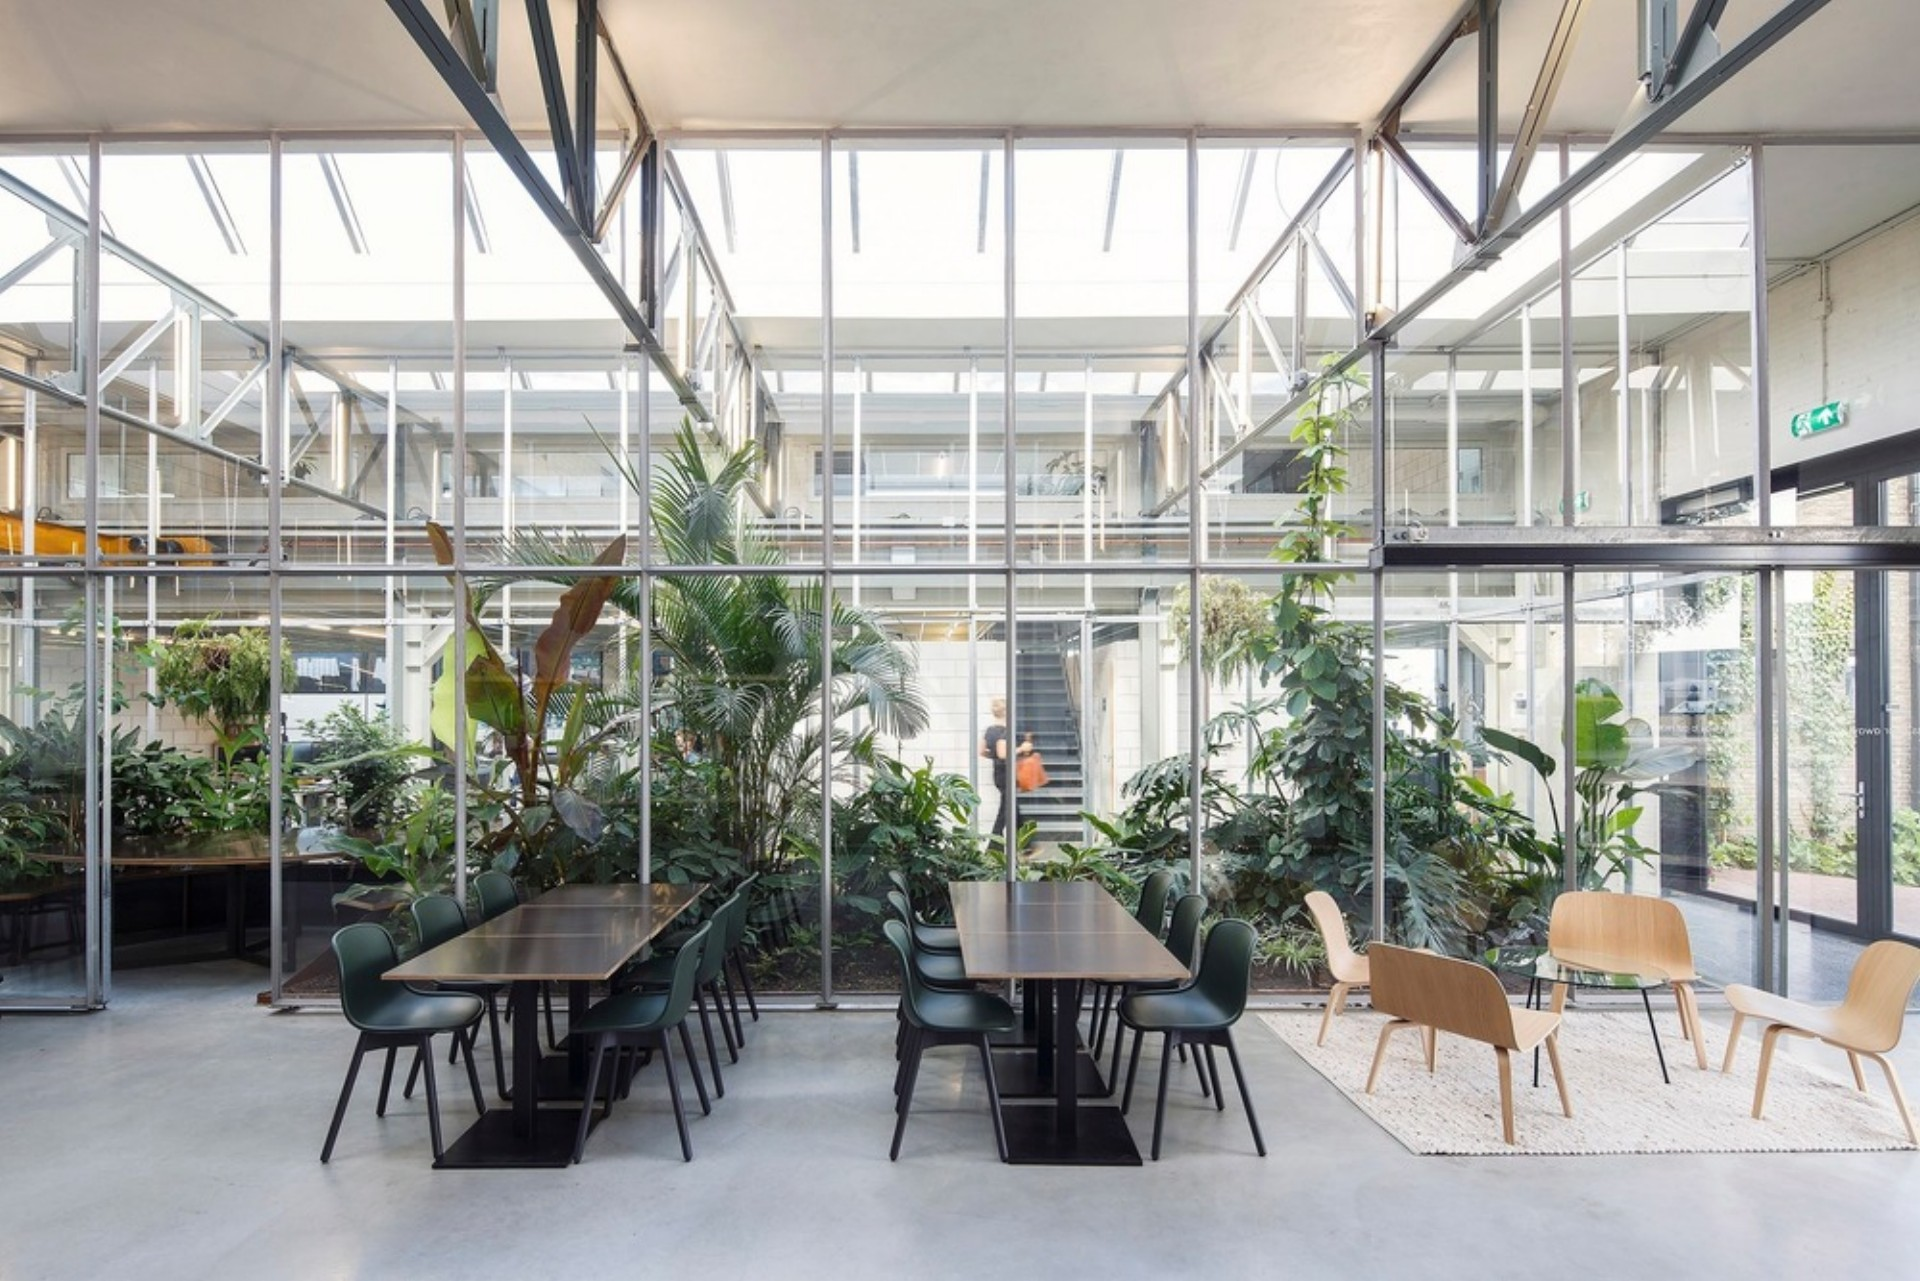 Amsterdam Interior Winners Of The Frame Awards For Interior Design At